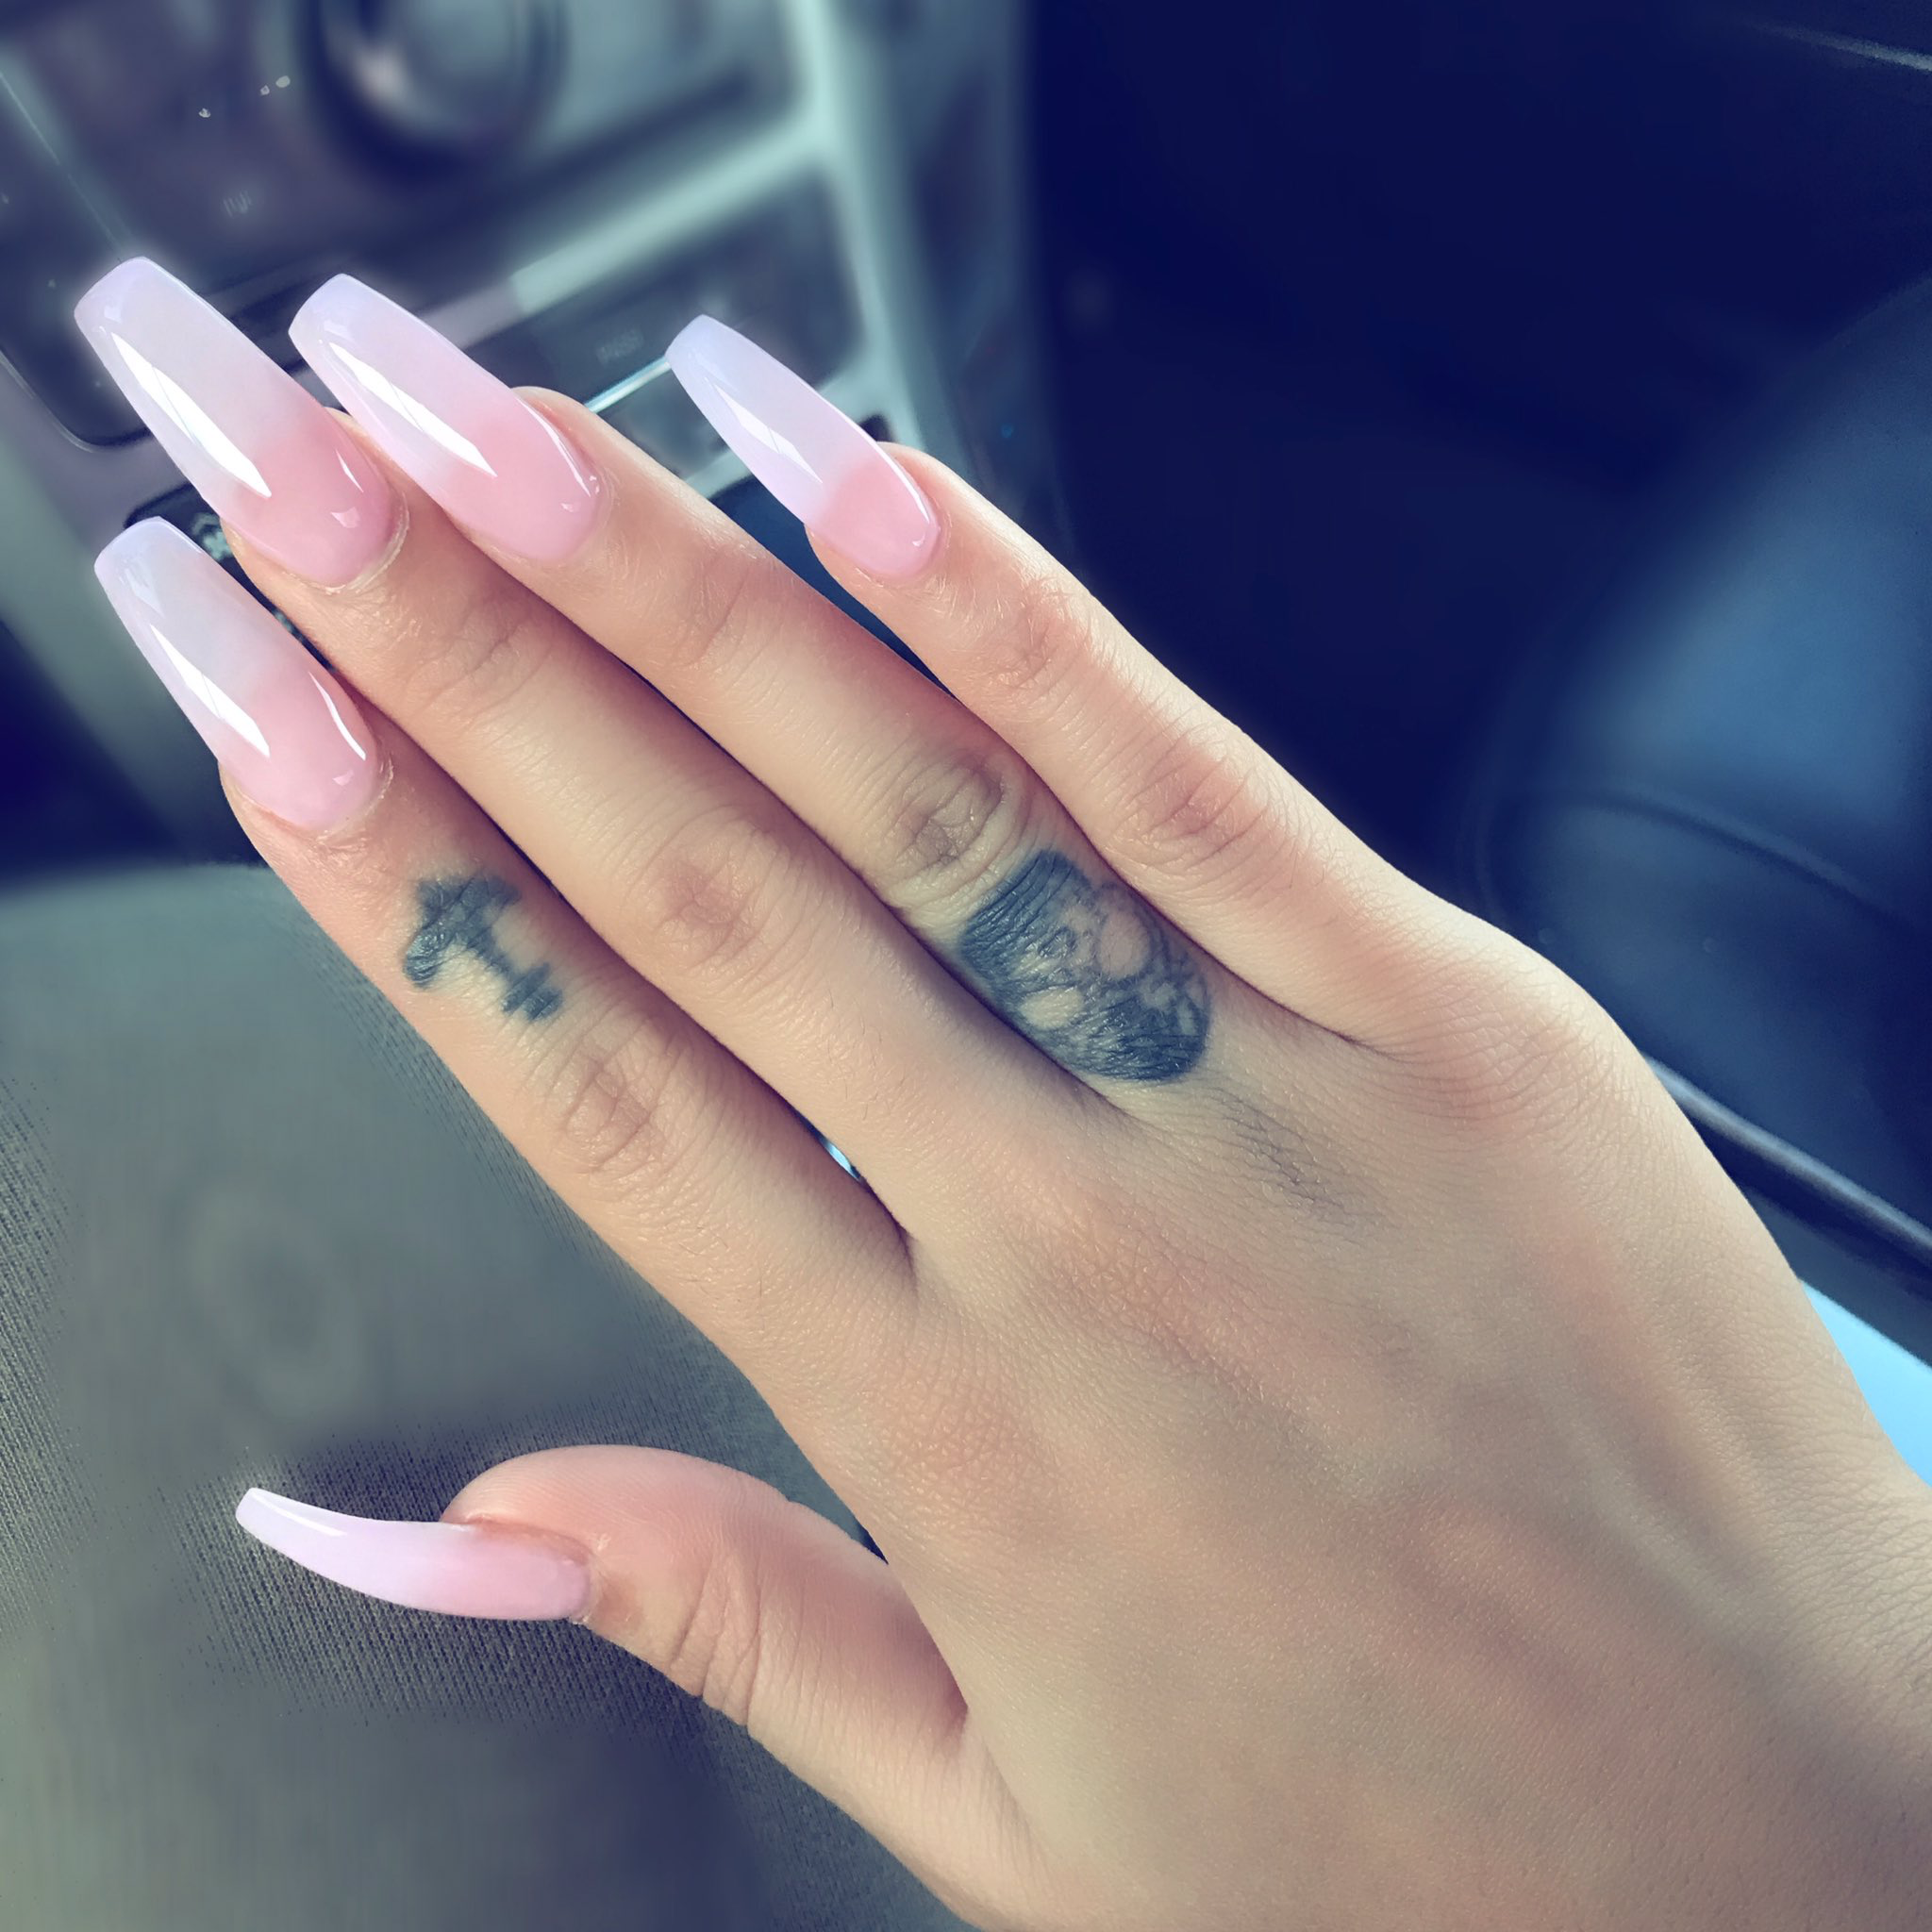 Pin by BærbieAmbition on BARBIENAILS   Pinterest   Nail inspo, Prom ...